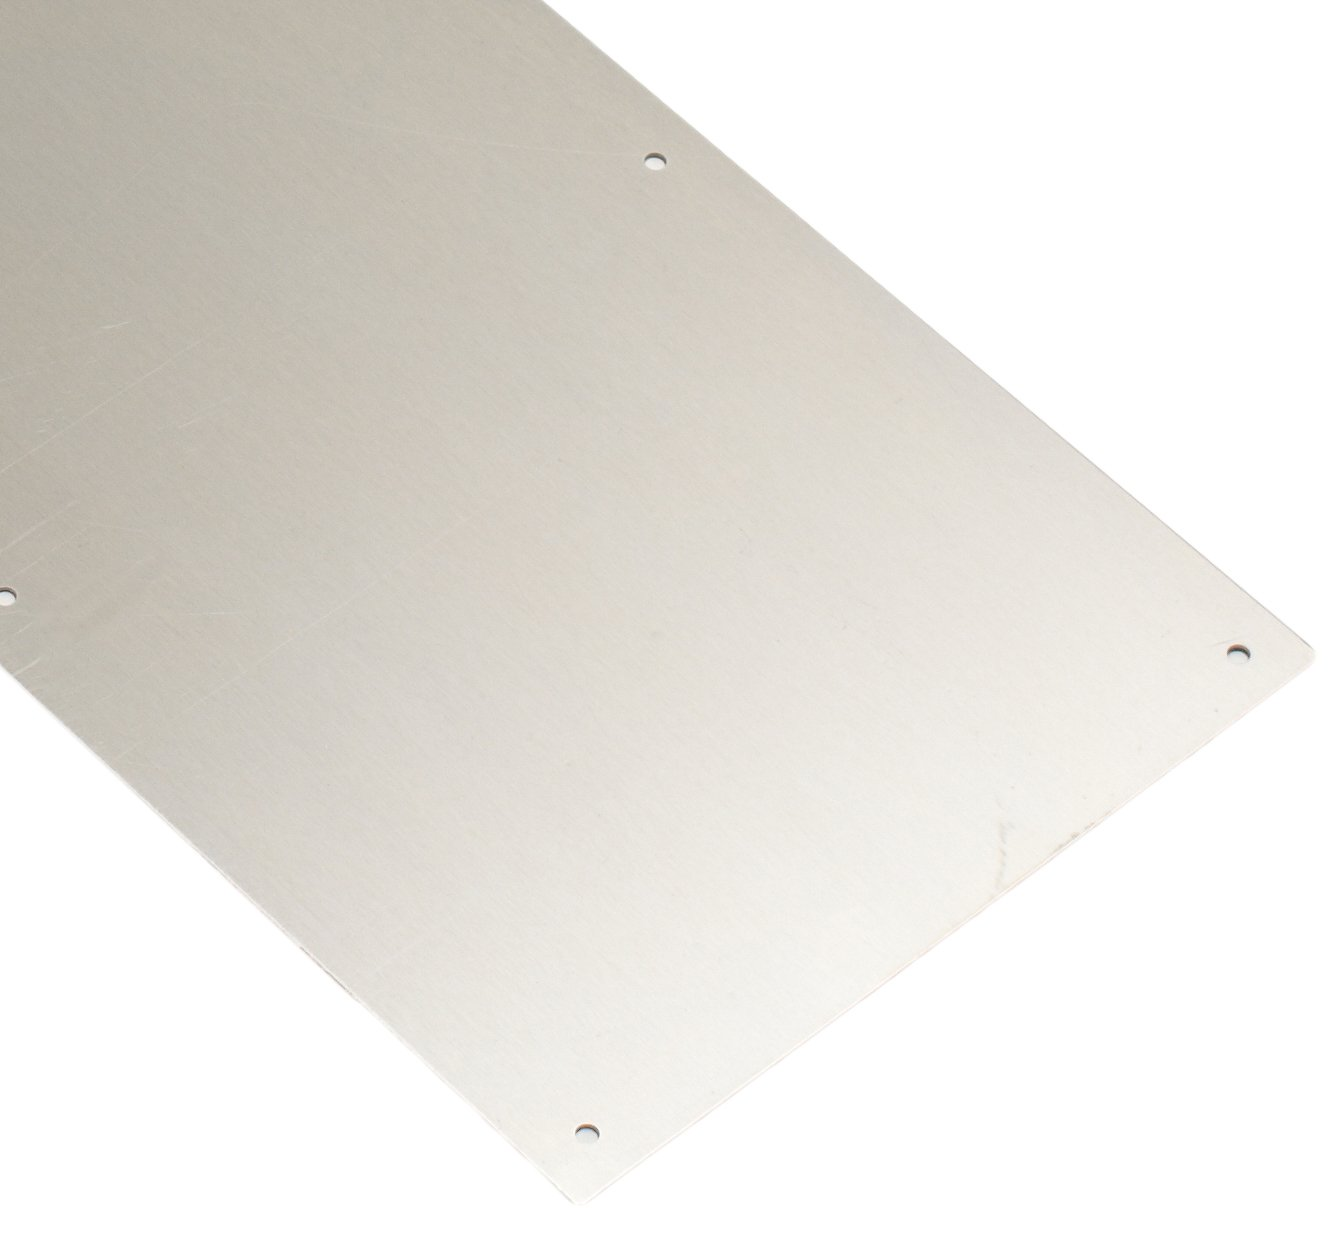 Hager 051954 190S 8'' X 34'' US32D Door Protection Plate 0.050'' Gauge without Bevel